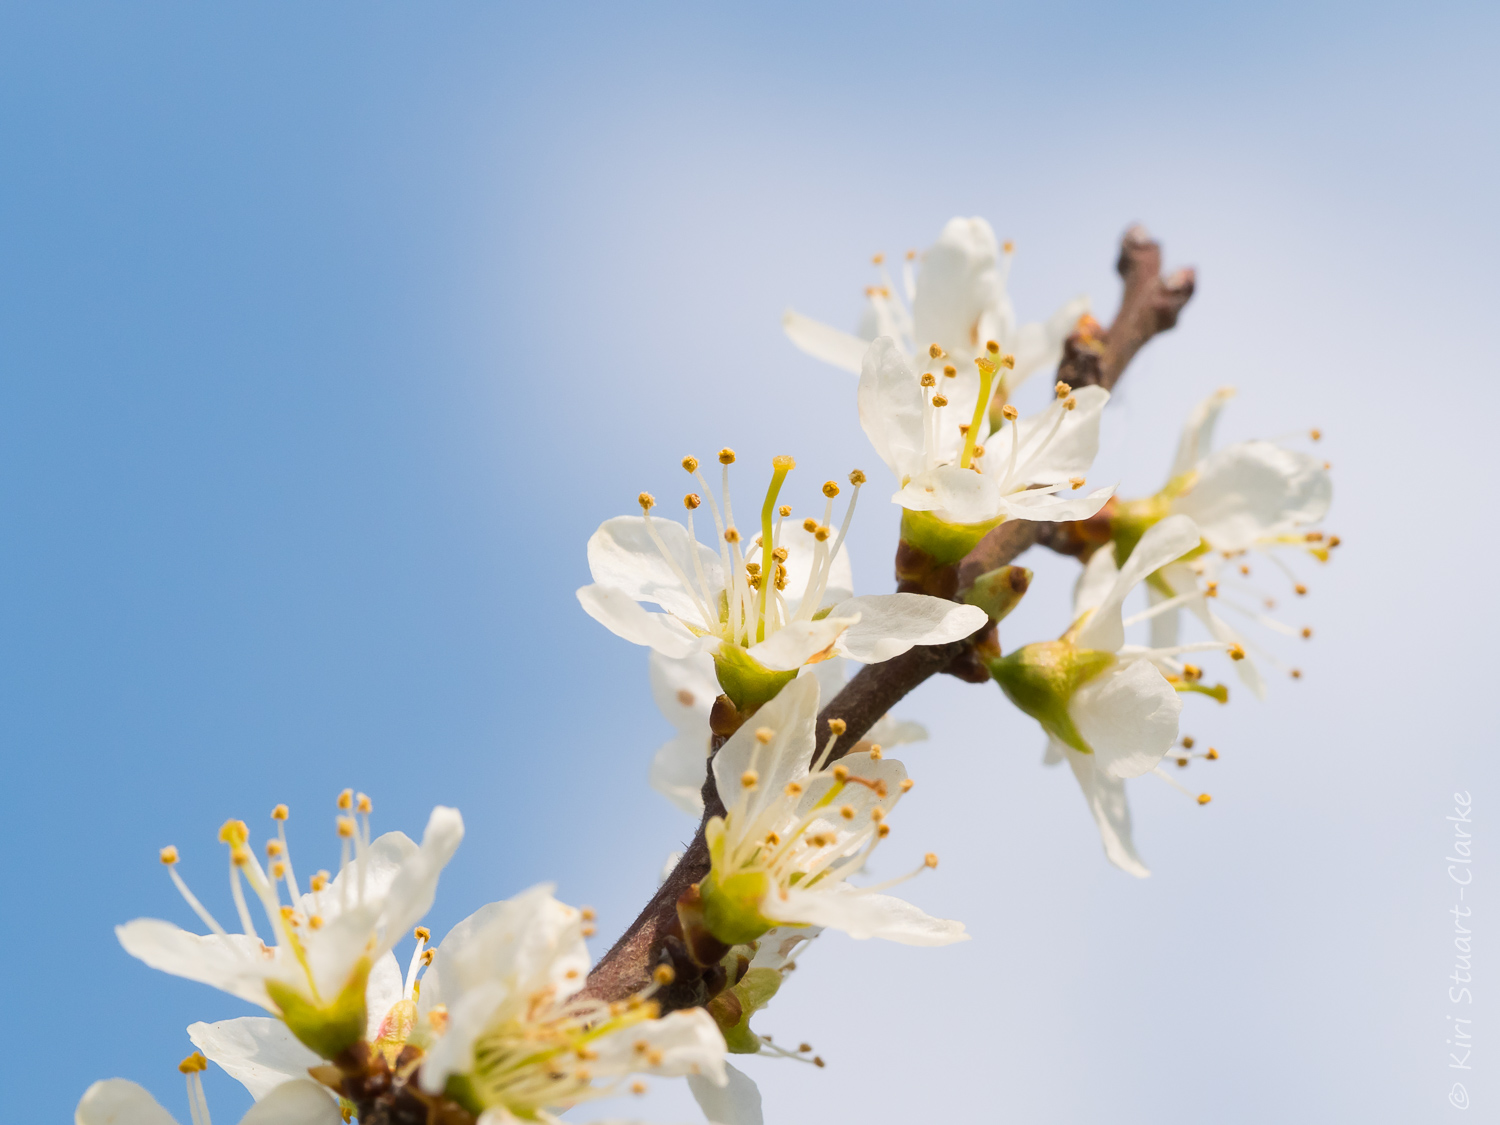 Blackthorn sprig with blossom